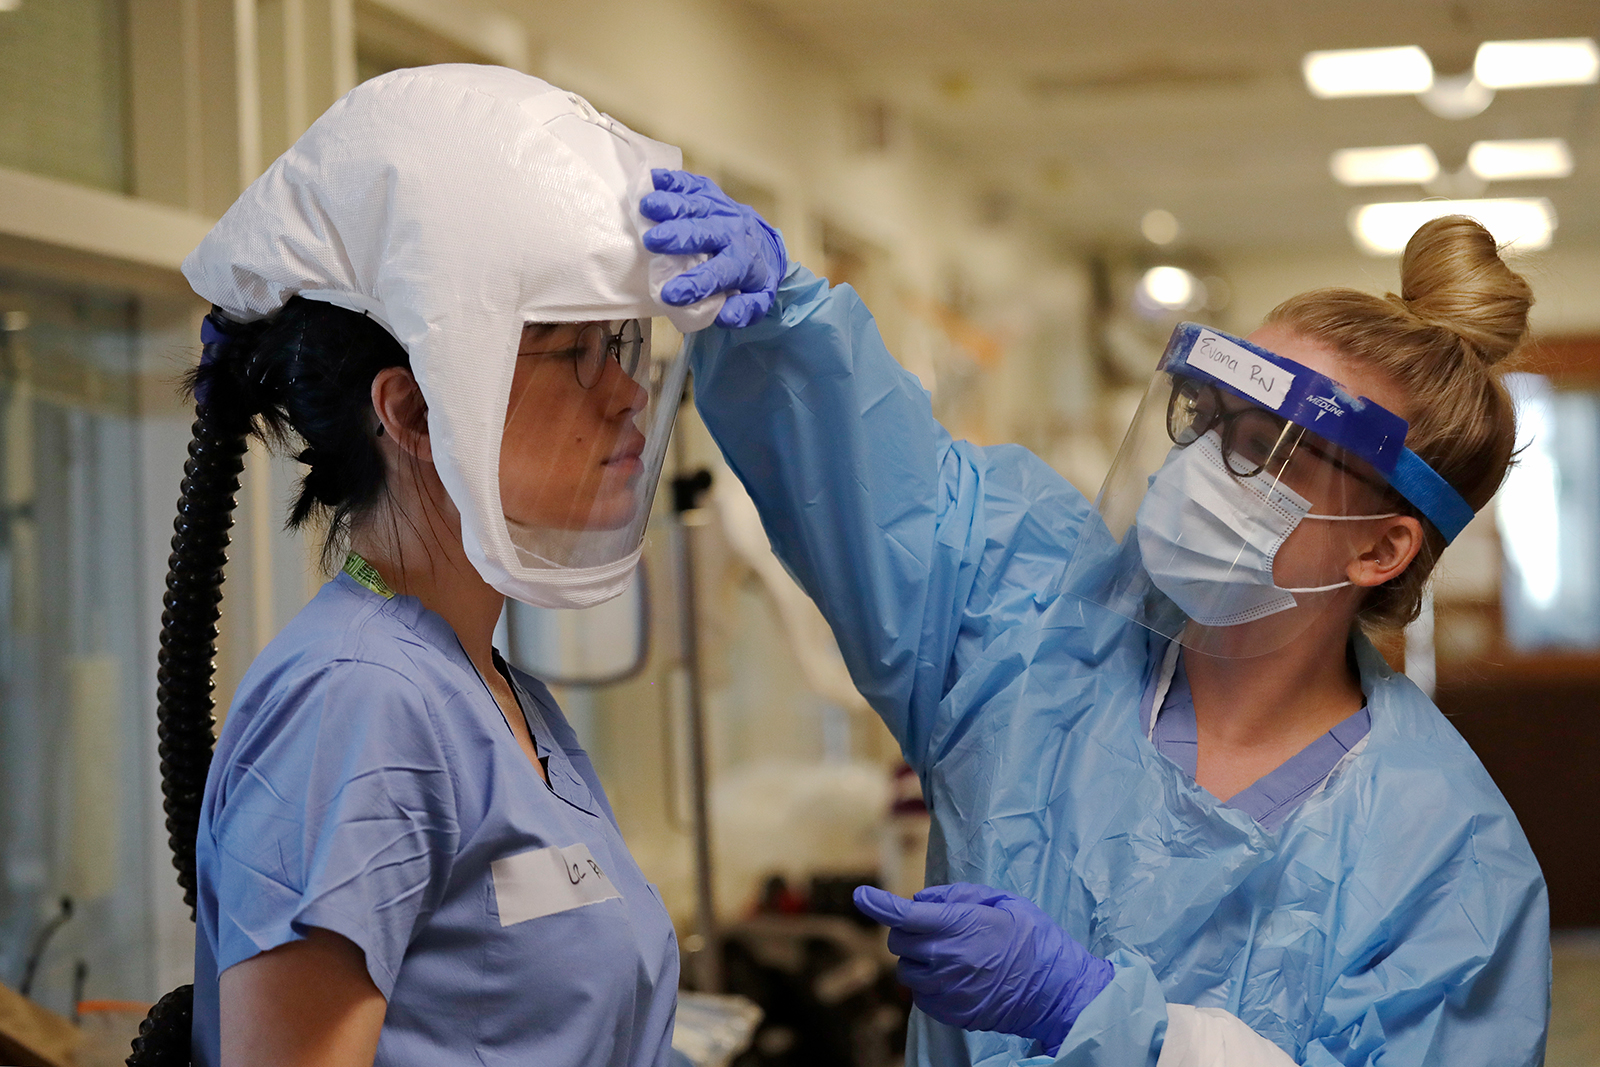 Liz Vereshko, left, is assisted into PPE equipment by fellow nurse Evana Croda before stepping into a patient's room in the Covid-19 Intensive Care Unit at Harborview Medical Center on May 8, in Seattle.